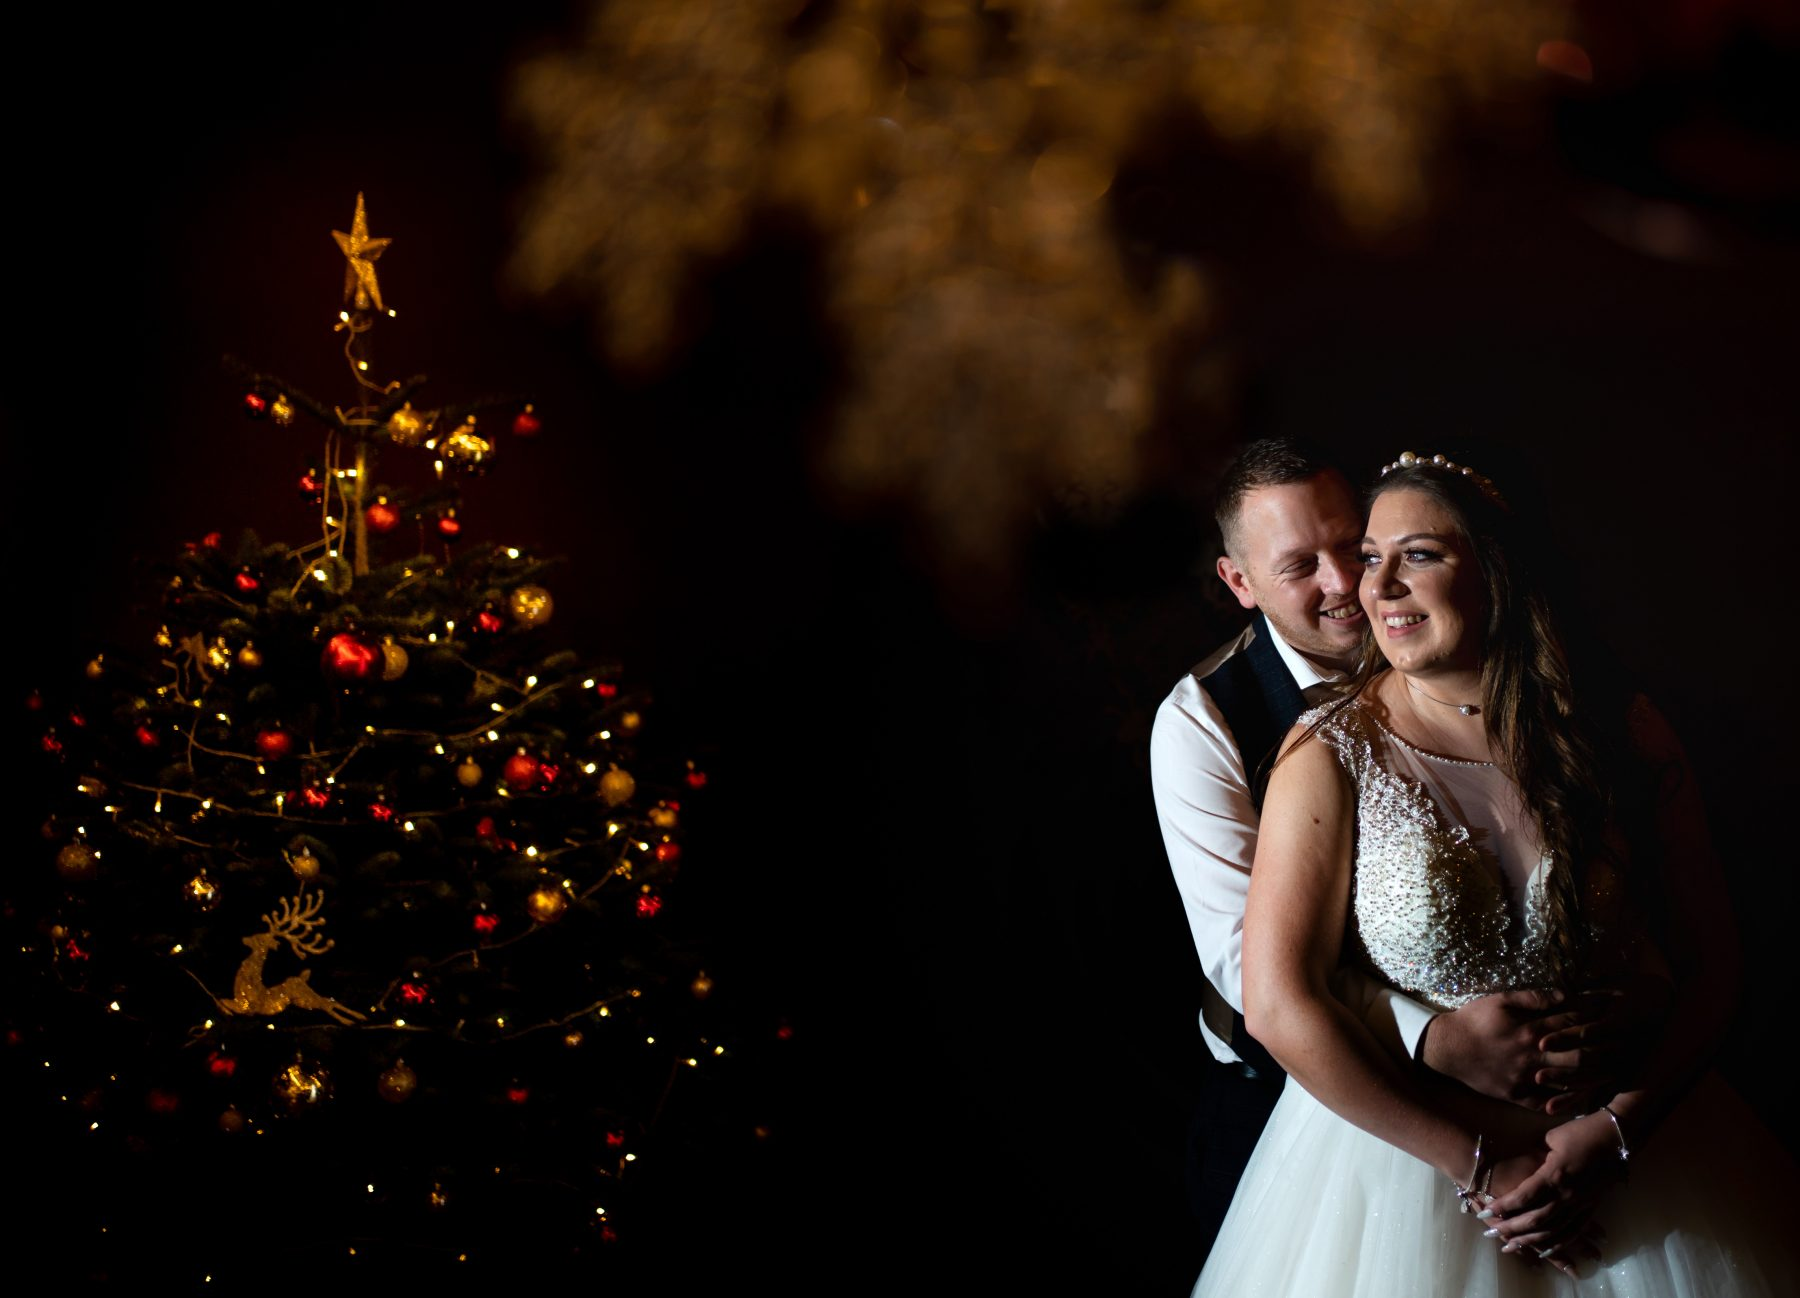 A creative off camera flash photograph of the happy couple